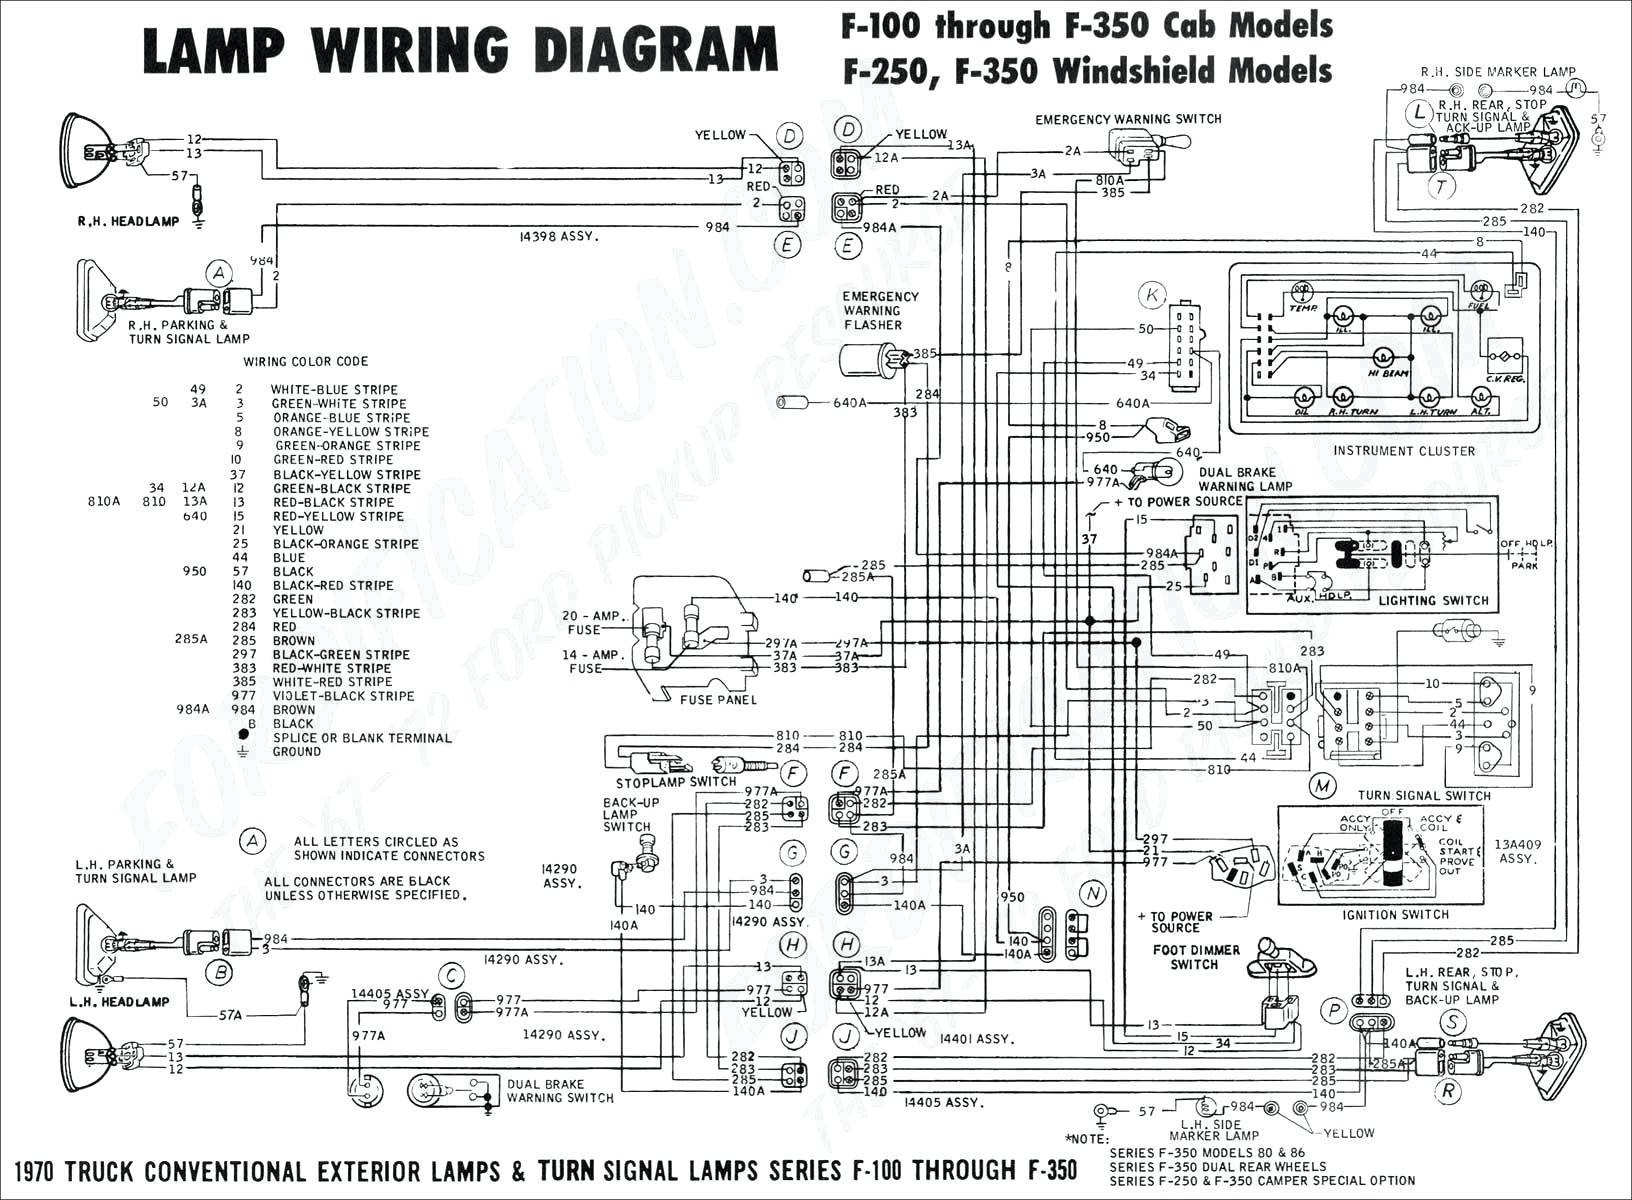 09 f250 headlight wire diagram 05 f250 headlight wiring diagram #9